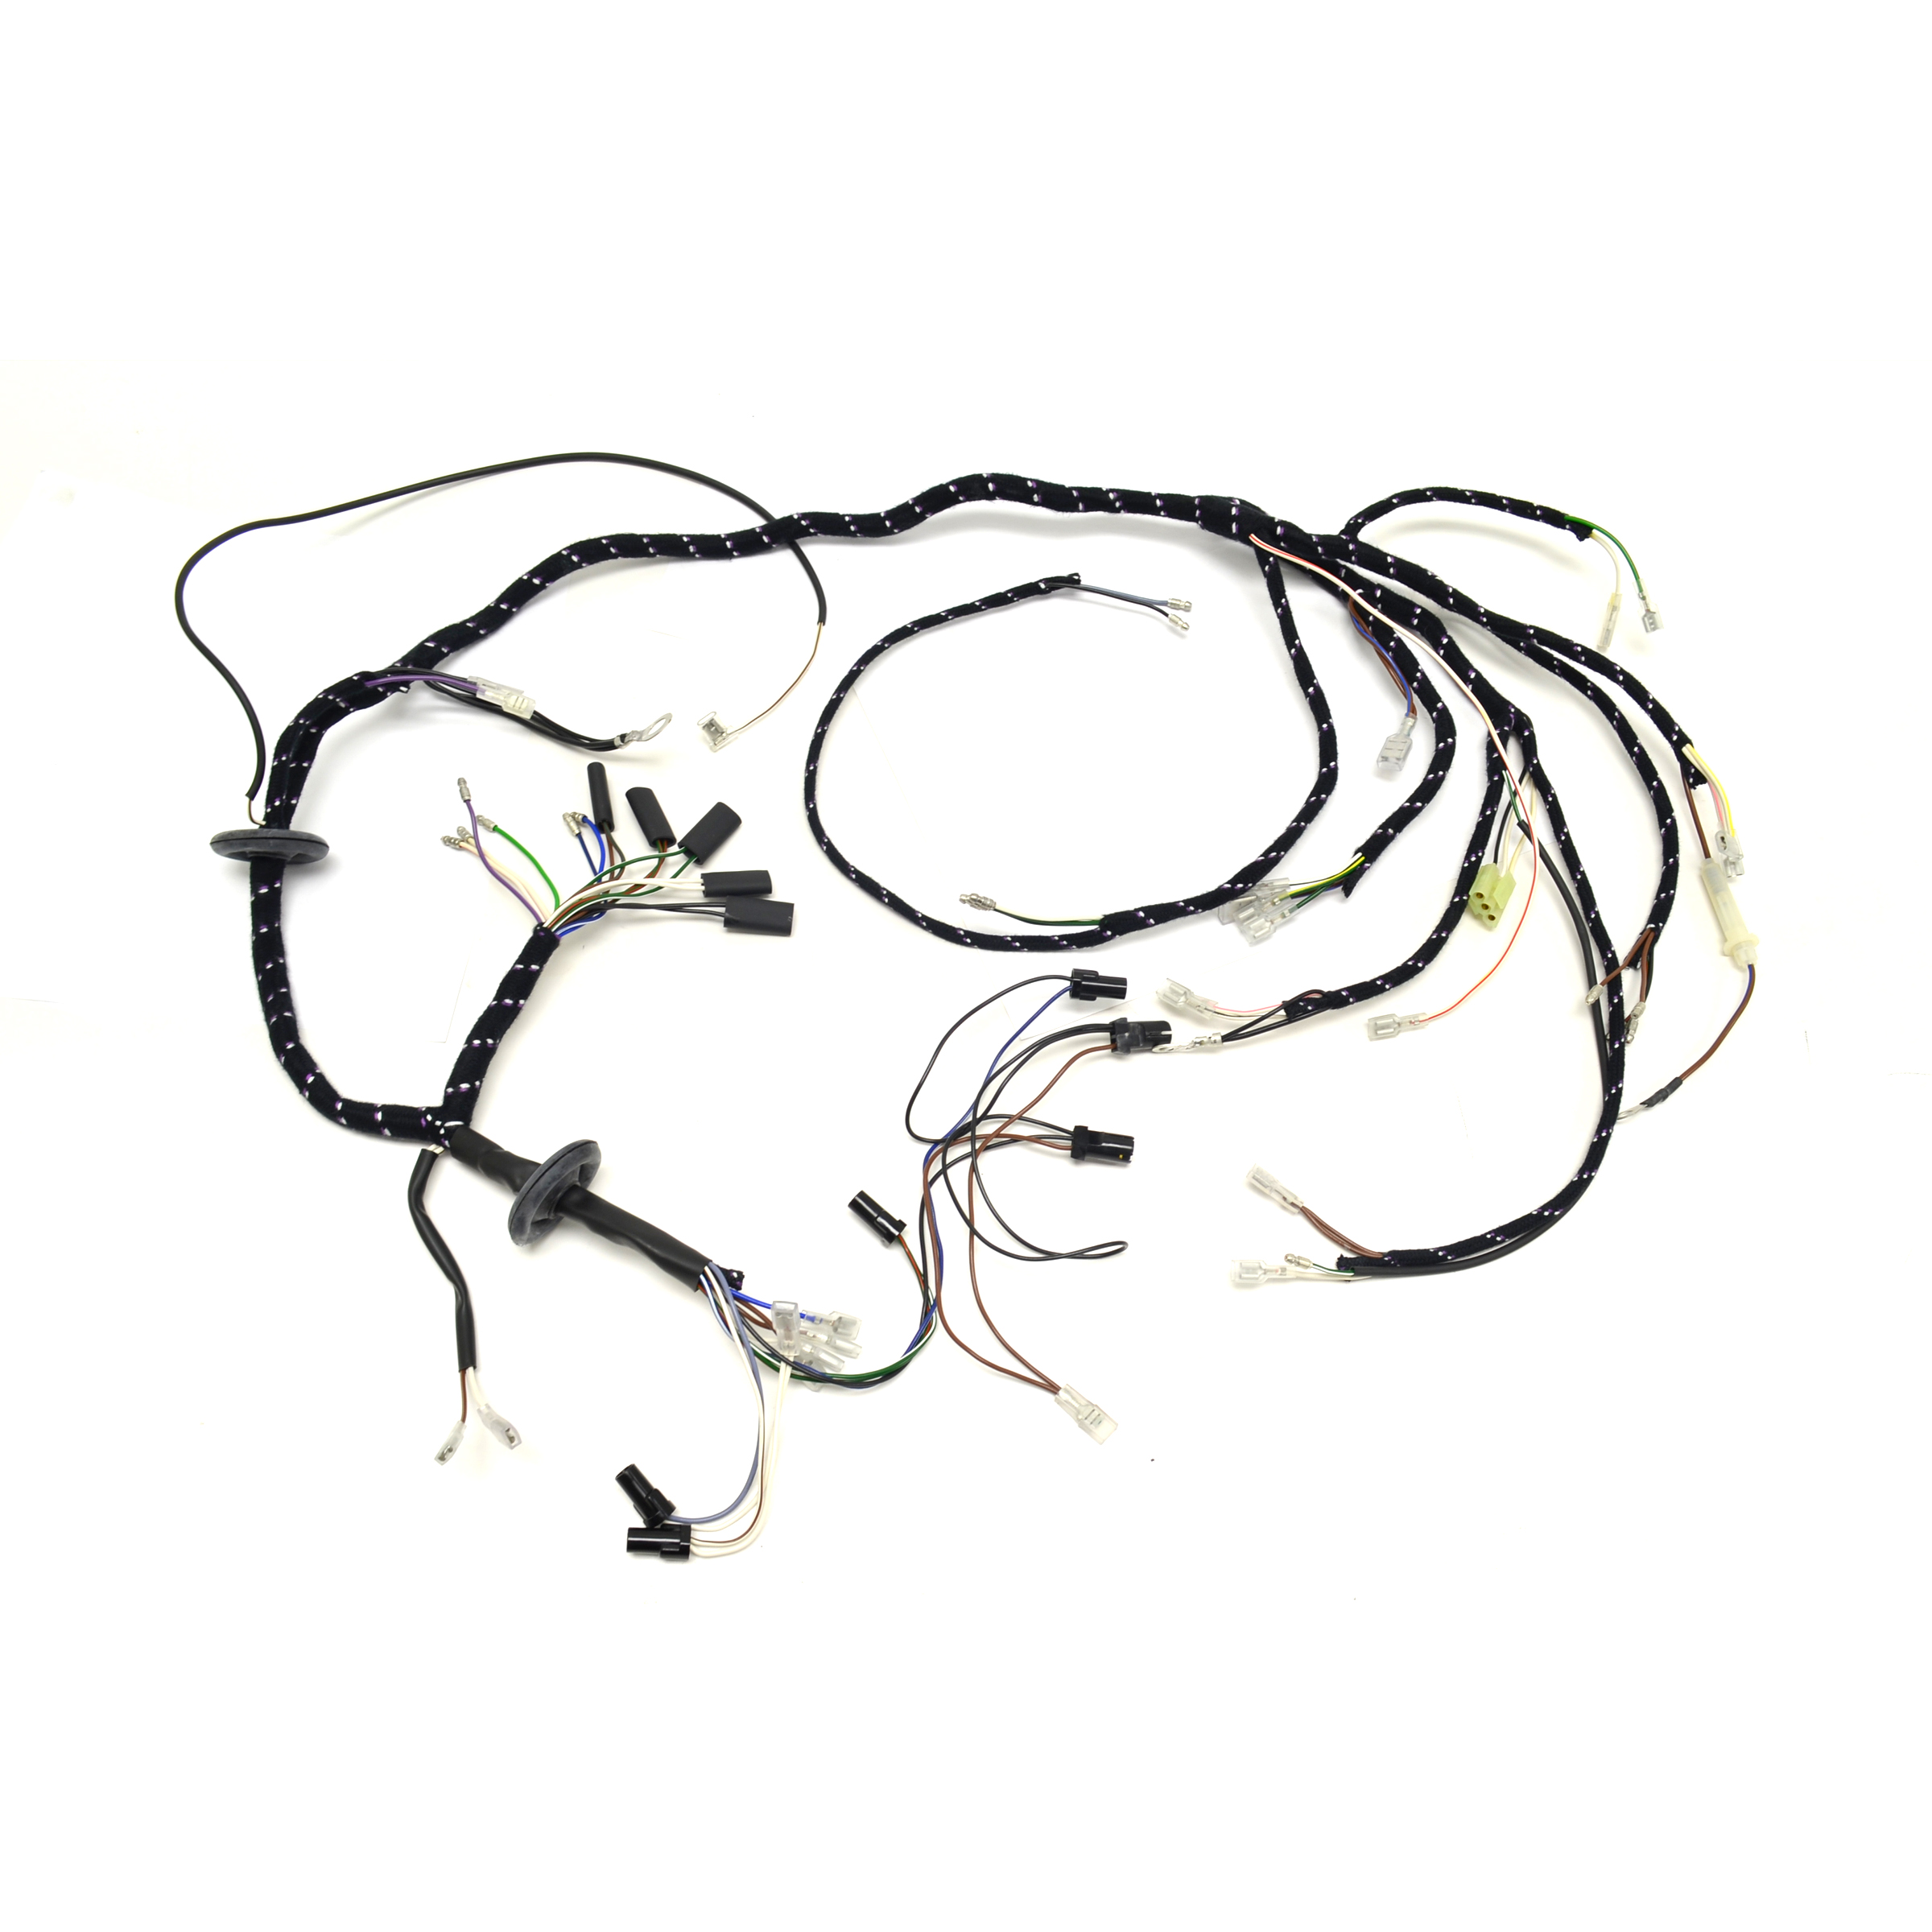 wiring harness manufacturer uk